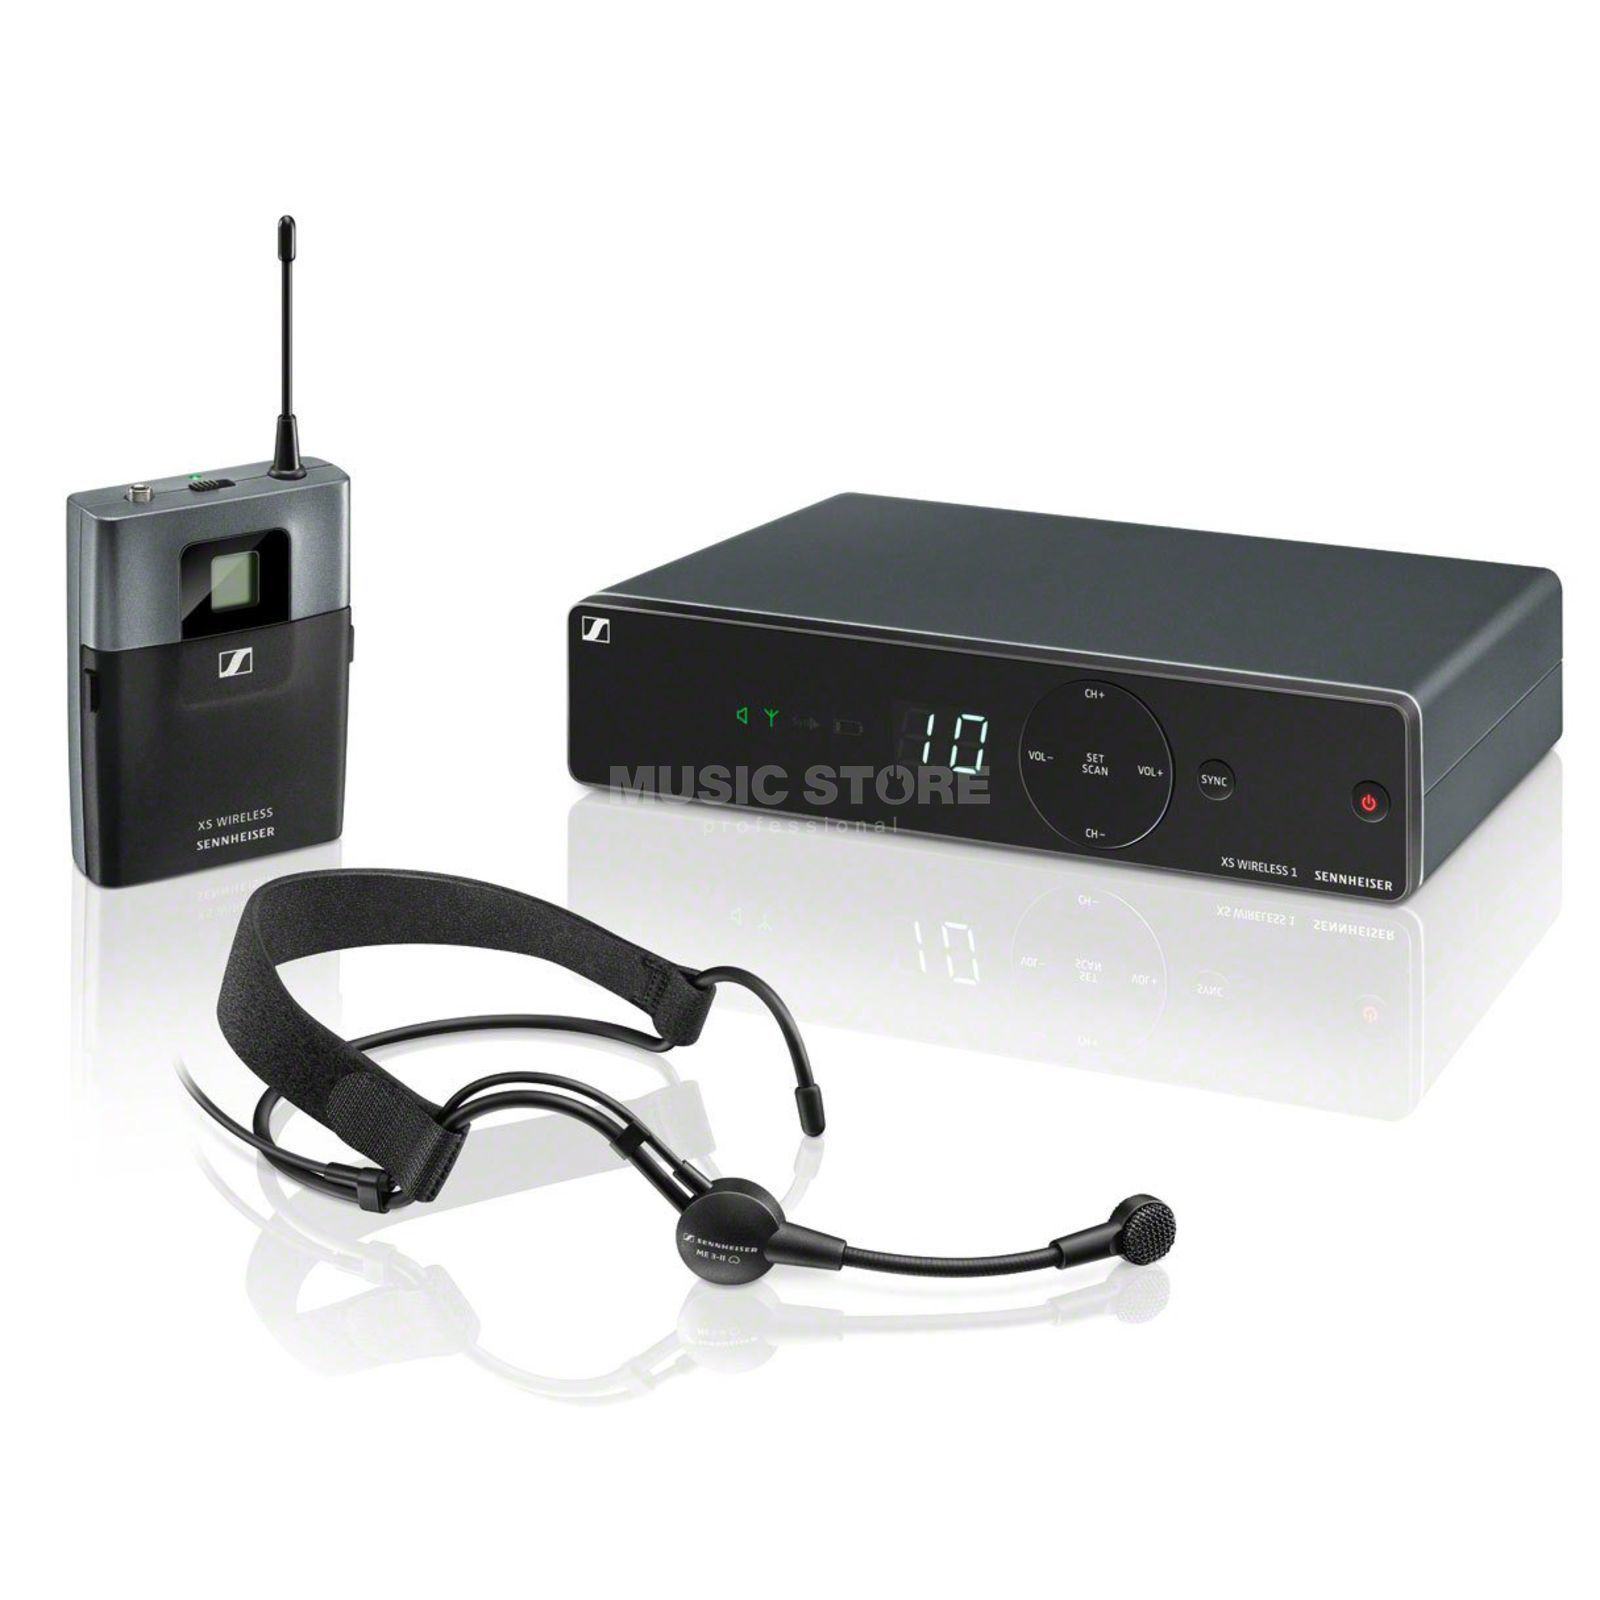 Sennheiser XSW 1-ME3-GB Headset Set Product Image